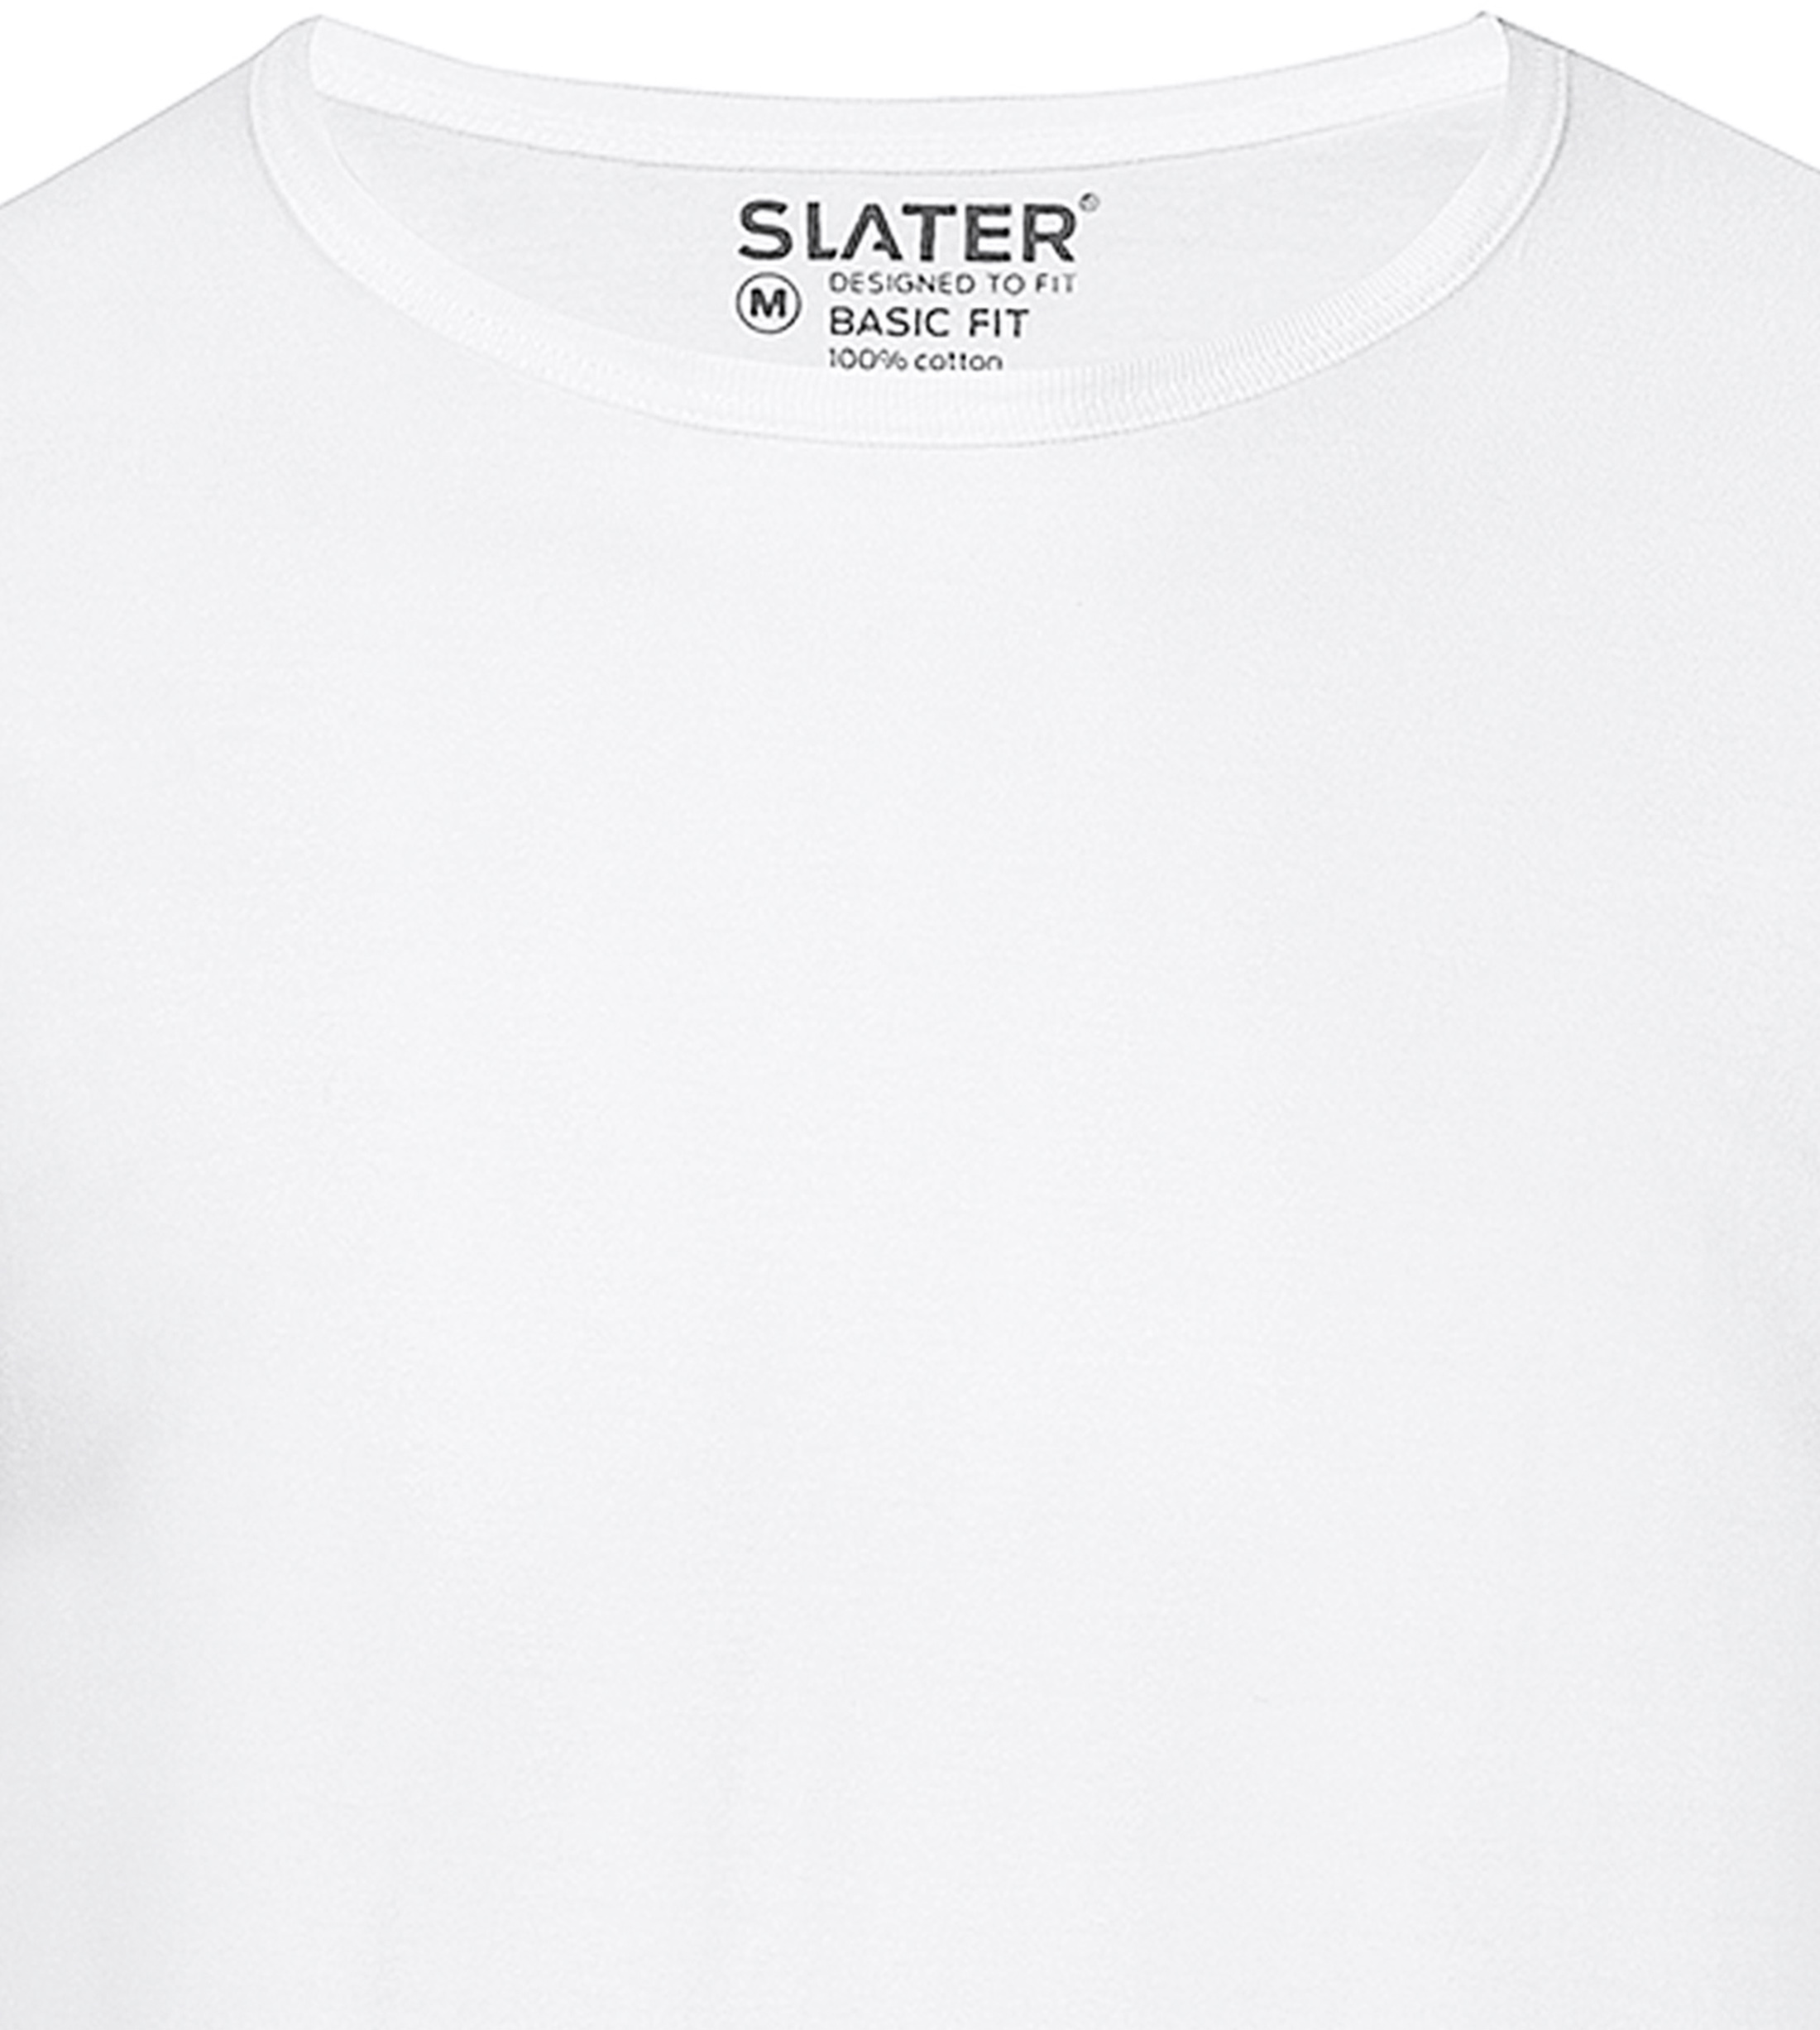 Slater 2-pack Basic Fit T-shirt White